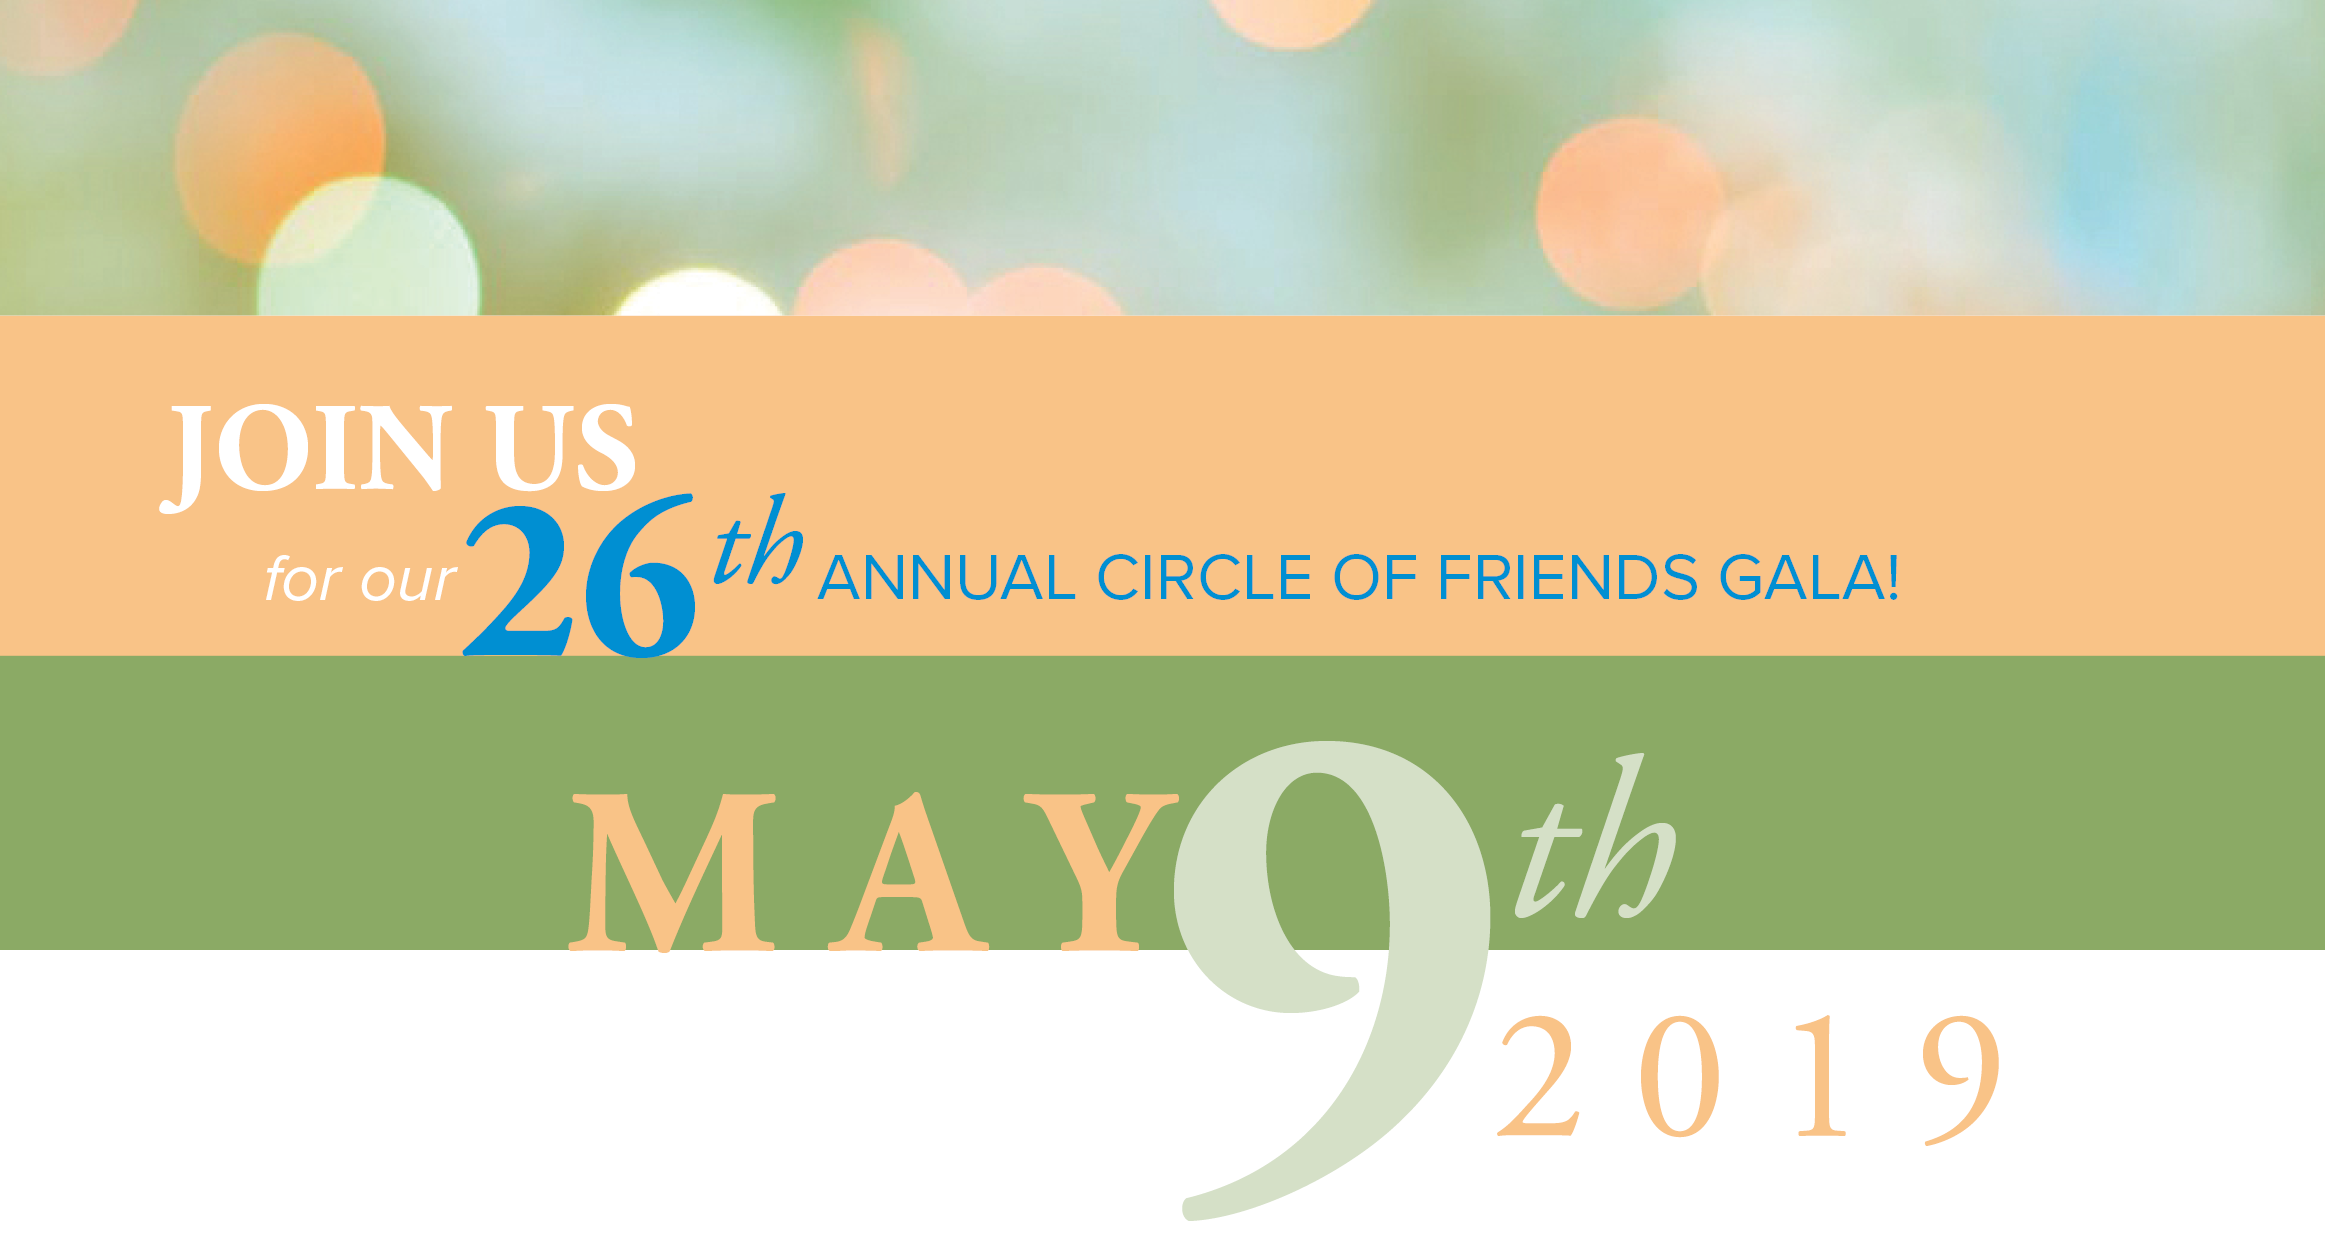 The 26th Annual Circle of Friends Gala is Around the Corner!